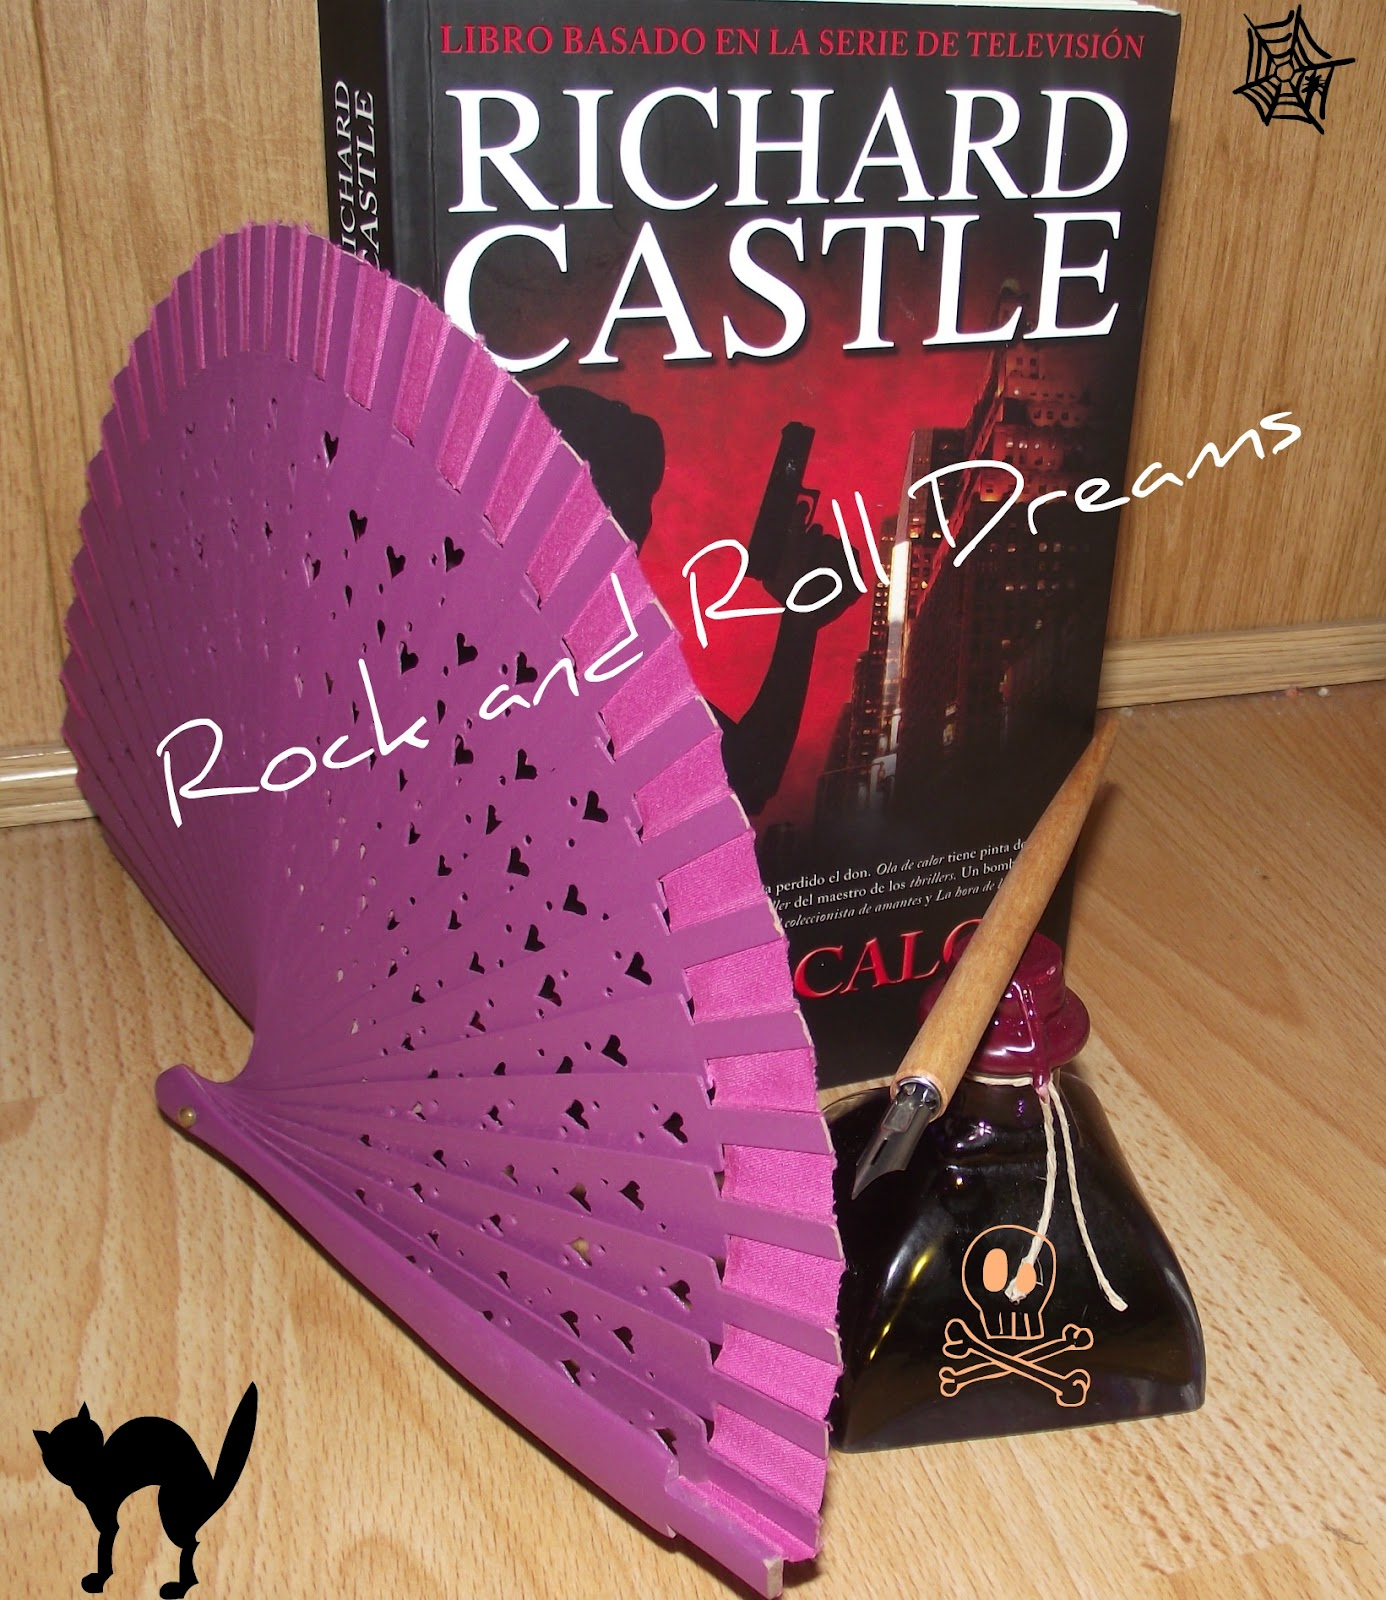 Ola De Calor Libro Rock And Roll Dreams Ola De Calor De Richard Castle